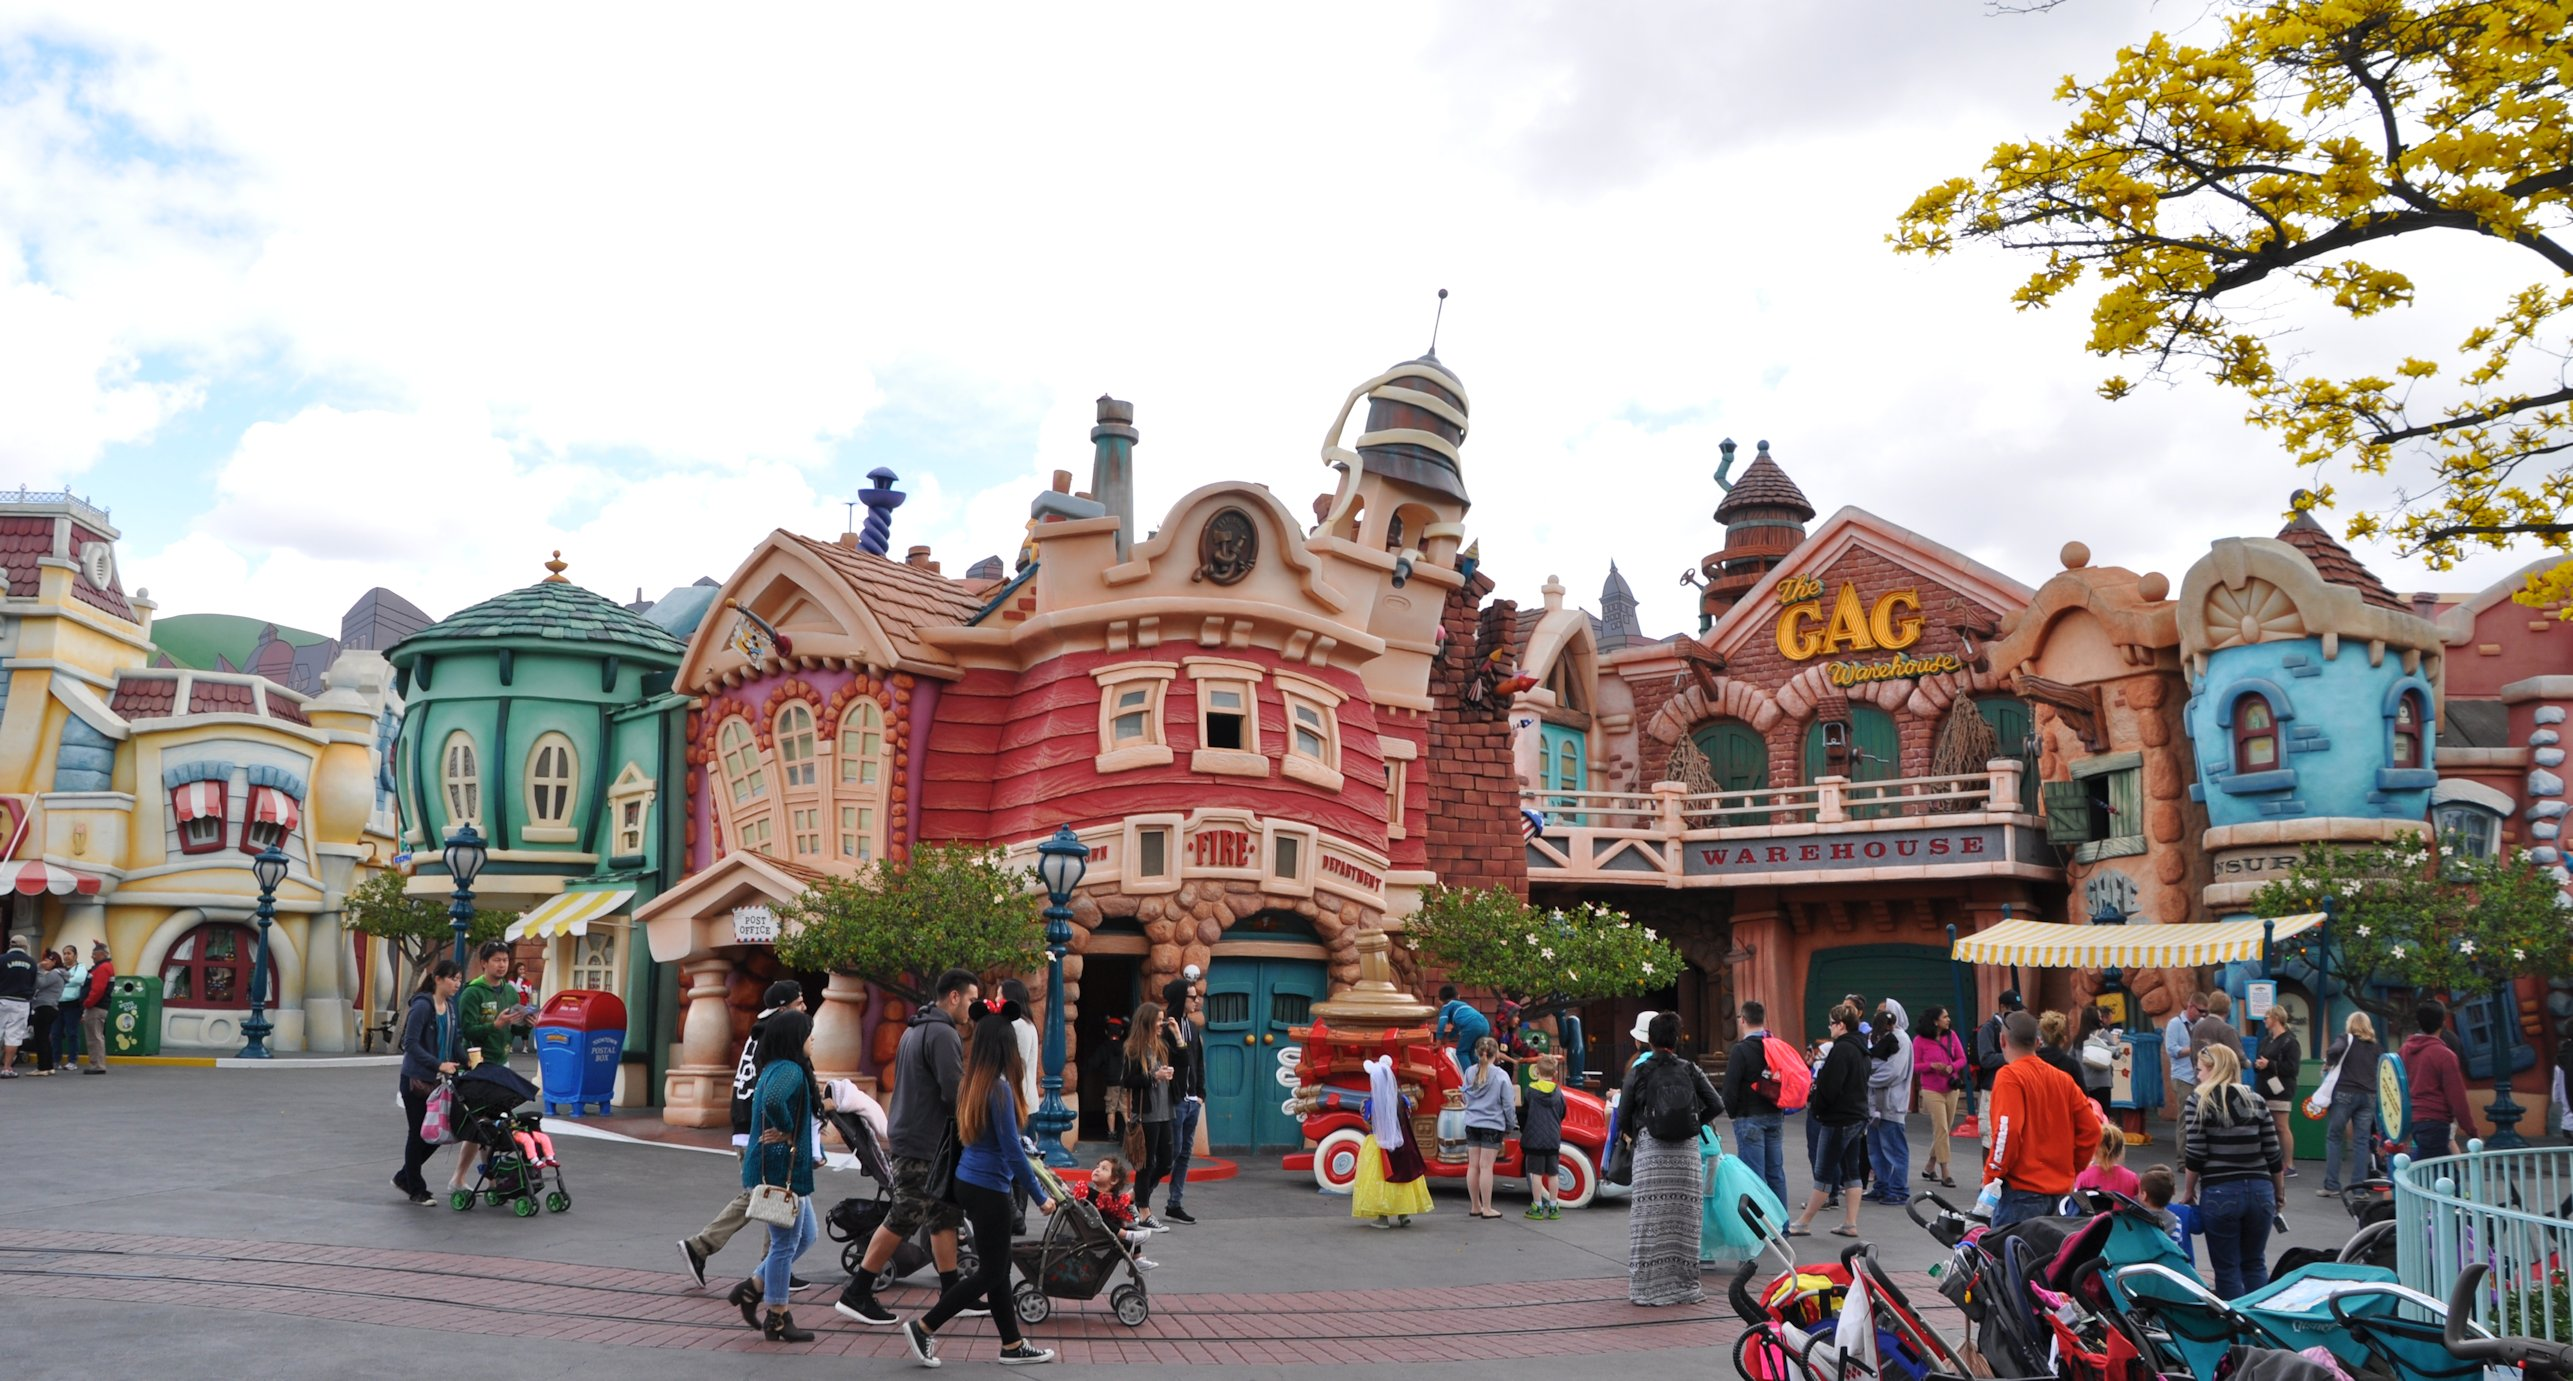 Where Is Disneyland Conscious Engagement - What city is disneyland in